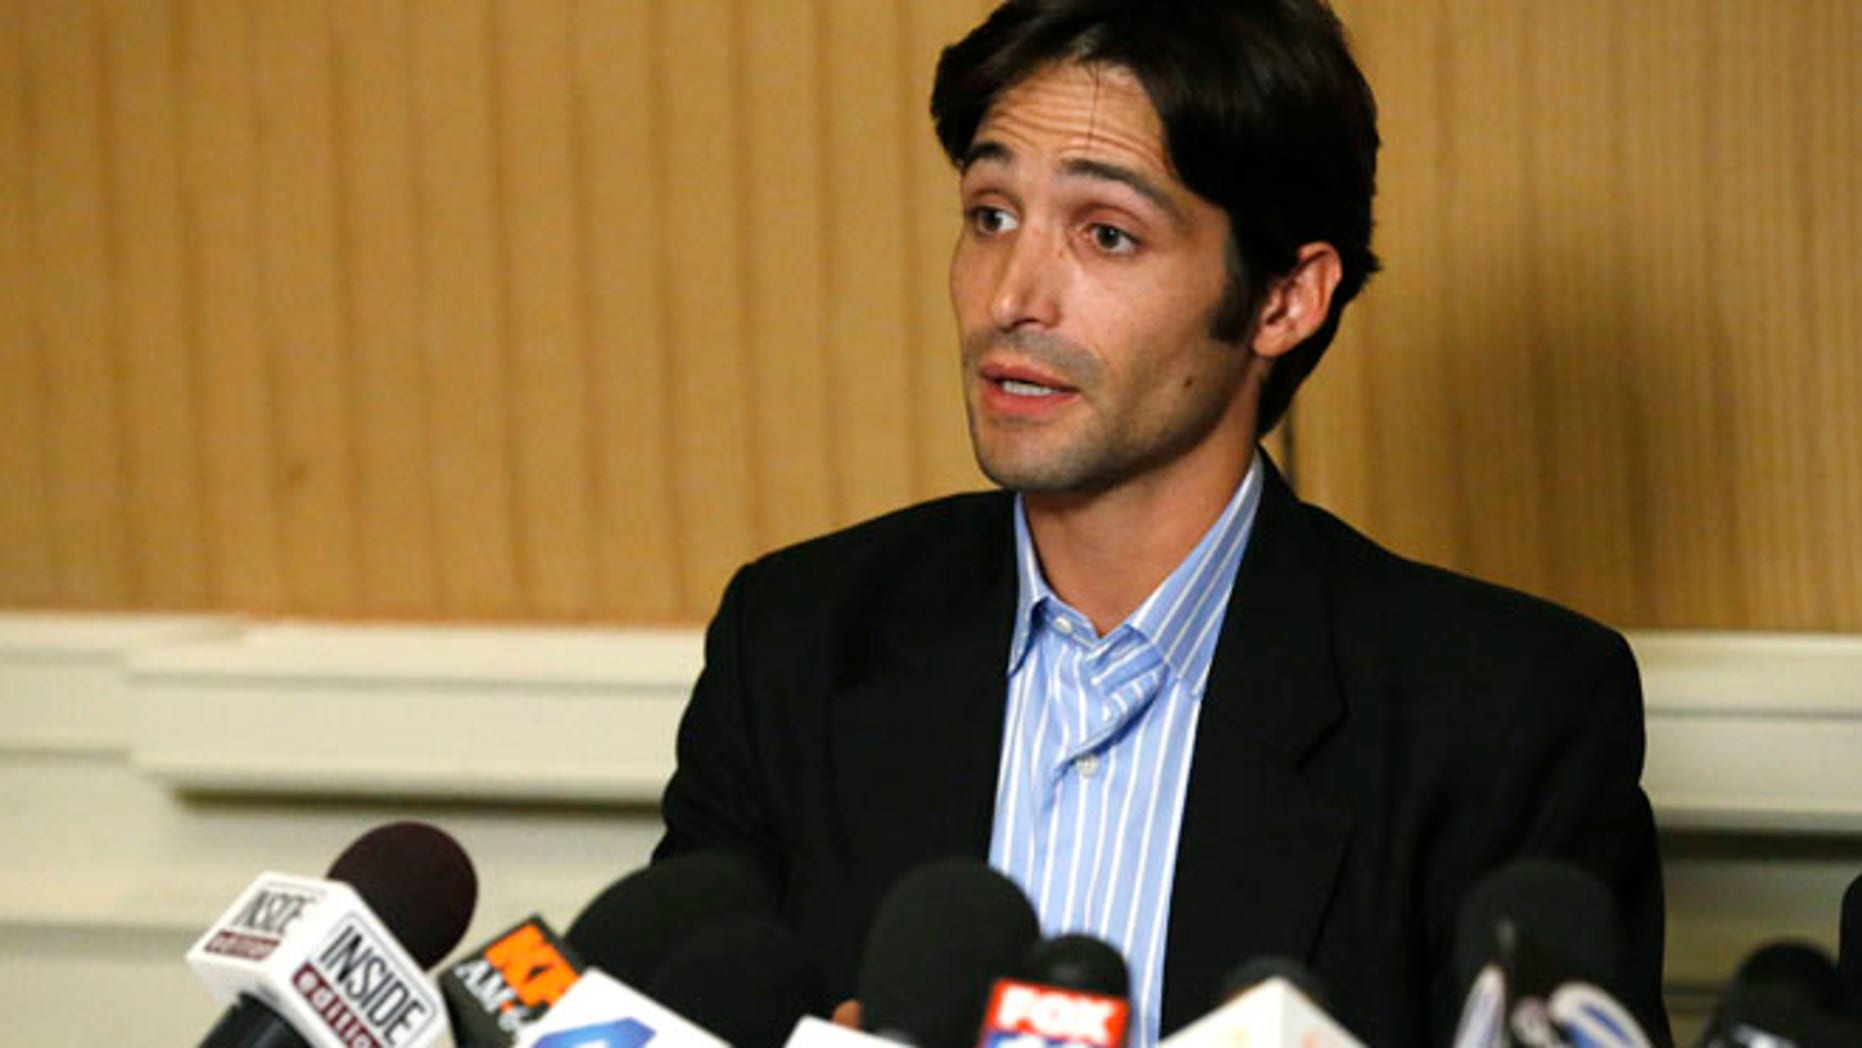 """Plaintiff Michael Egan speaks at a news conference at the Four Seasons Hotel in Los Angeles, California April 17, 2014. Egan filed a lawsuit on Wednesday against director Bryan Singer, accusing him of drugging and raping him in California and Hawaii in the late 1990s. Singer's attorney, Marty Singer, called the claims """"without merit"""" and """"absurd and defamatory.""""  REUTERS/Mario Anzuoni  (UNITED STATES - Tags: ENTERTAINMENT) - RTR3LQXU"""